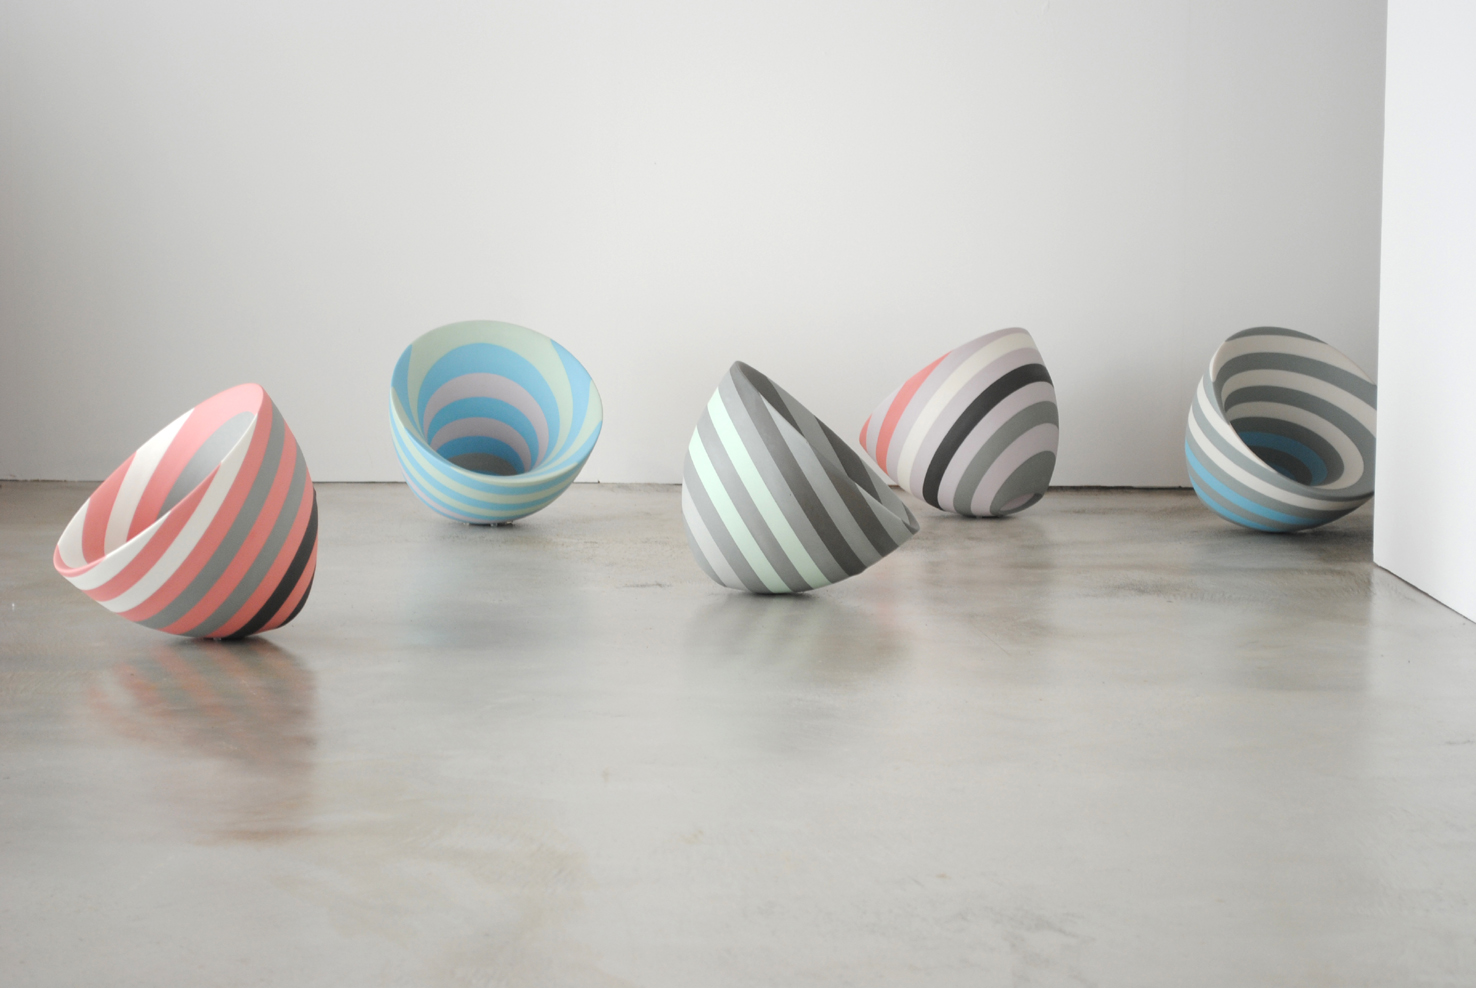 a9_mdba_mdby_manufactured_ceramics_colors_tomoko_sakumoto_form103from12